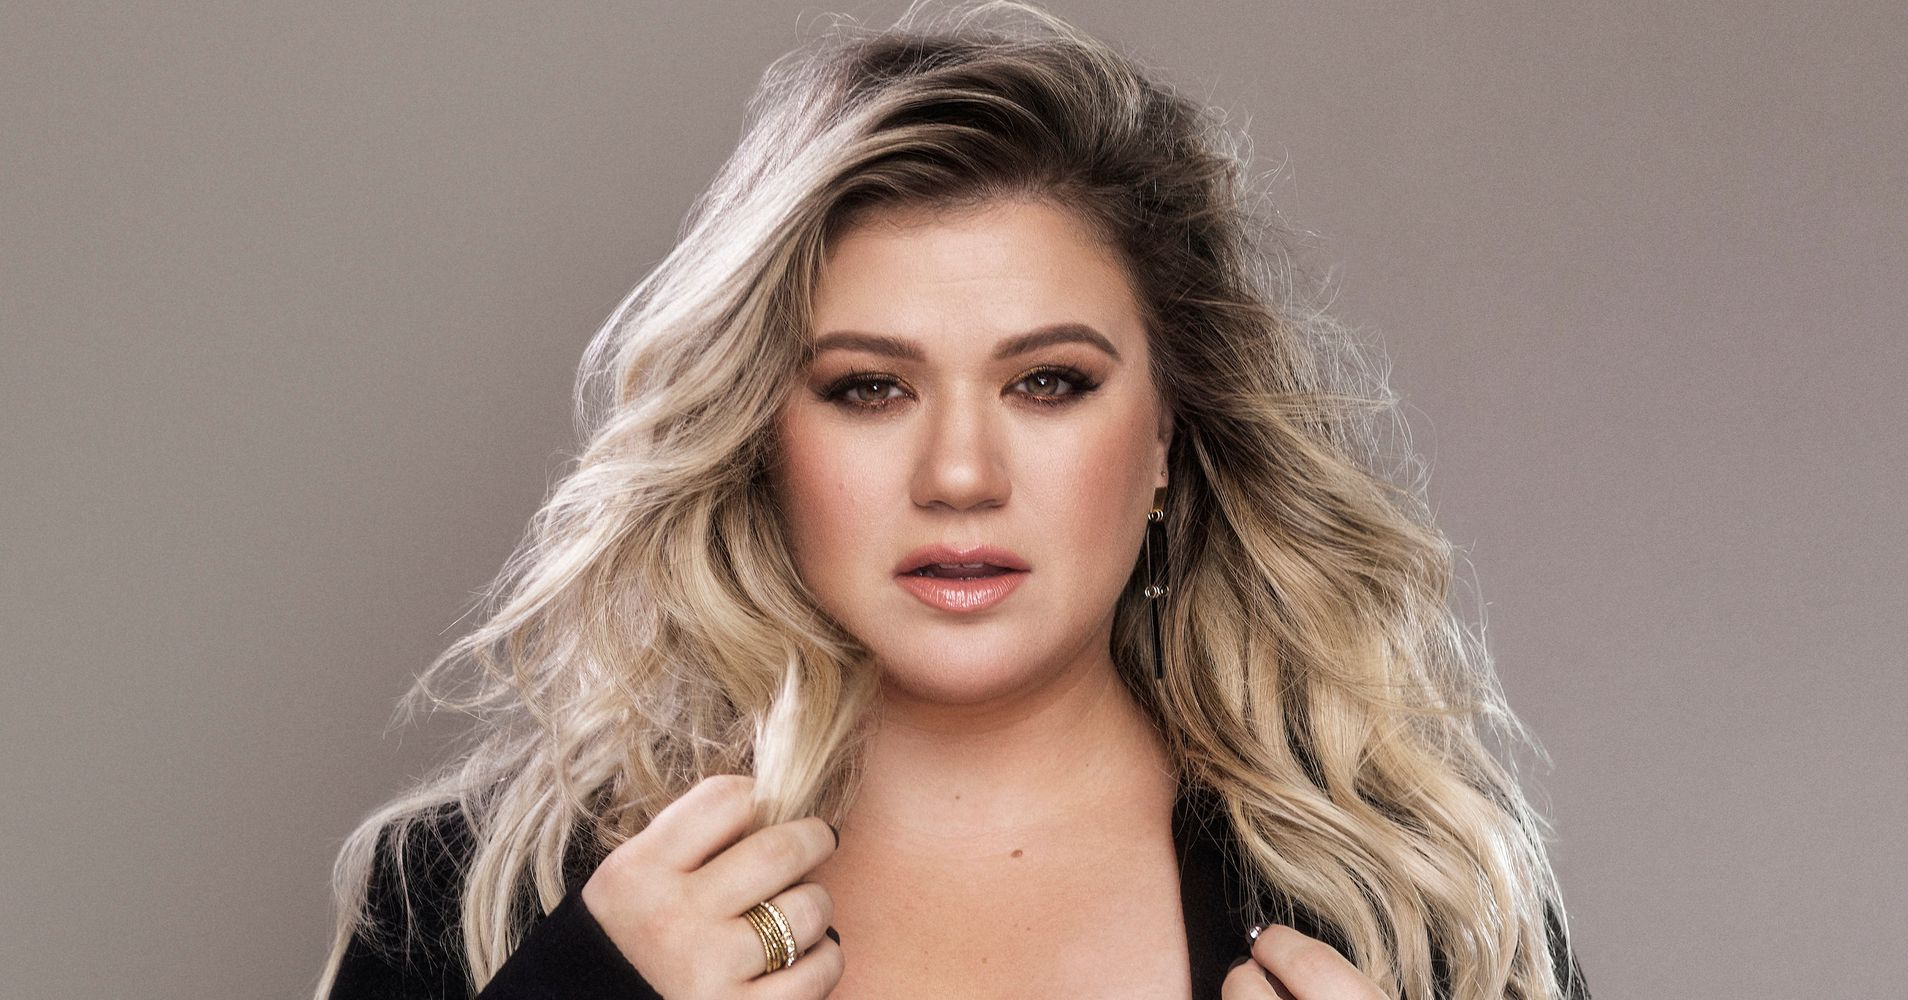 Kelly Clarkson Brings A Whole Lot Of Sass On New Album | HuffPost